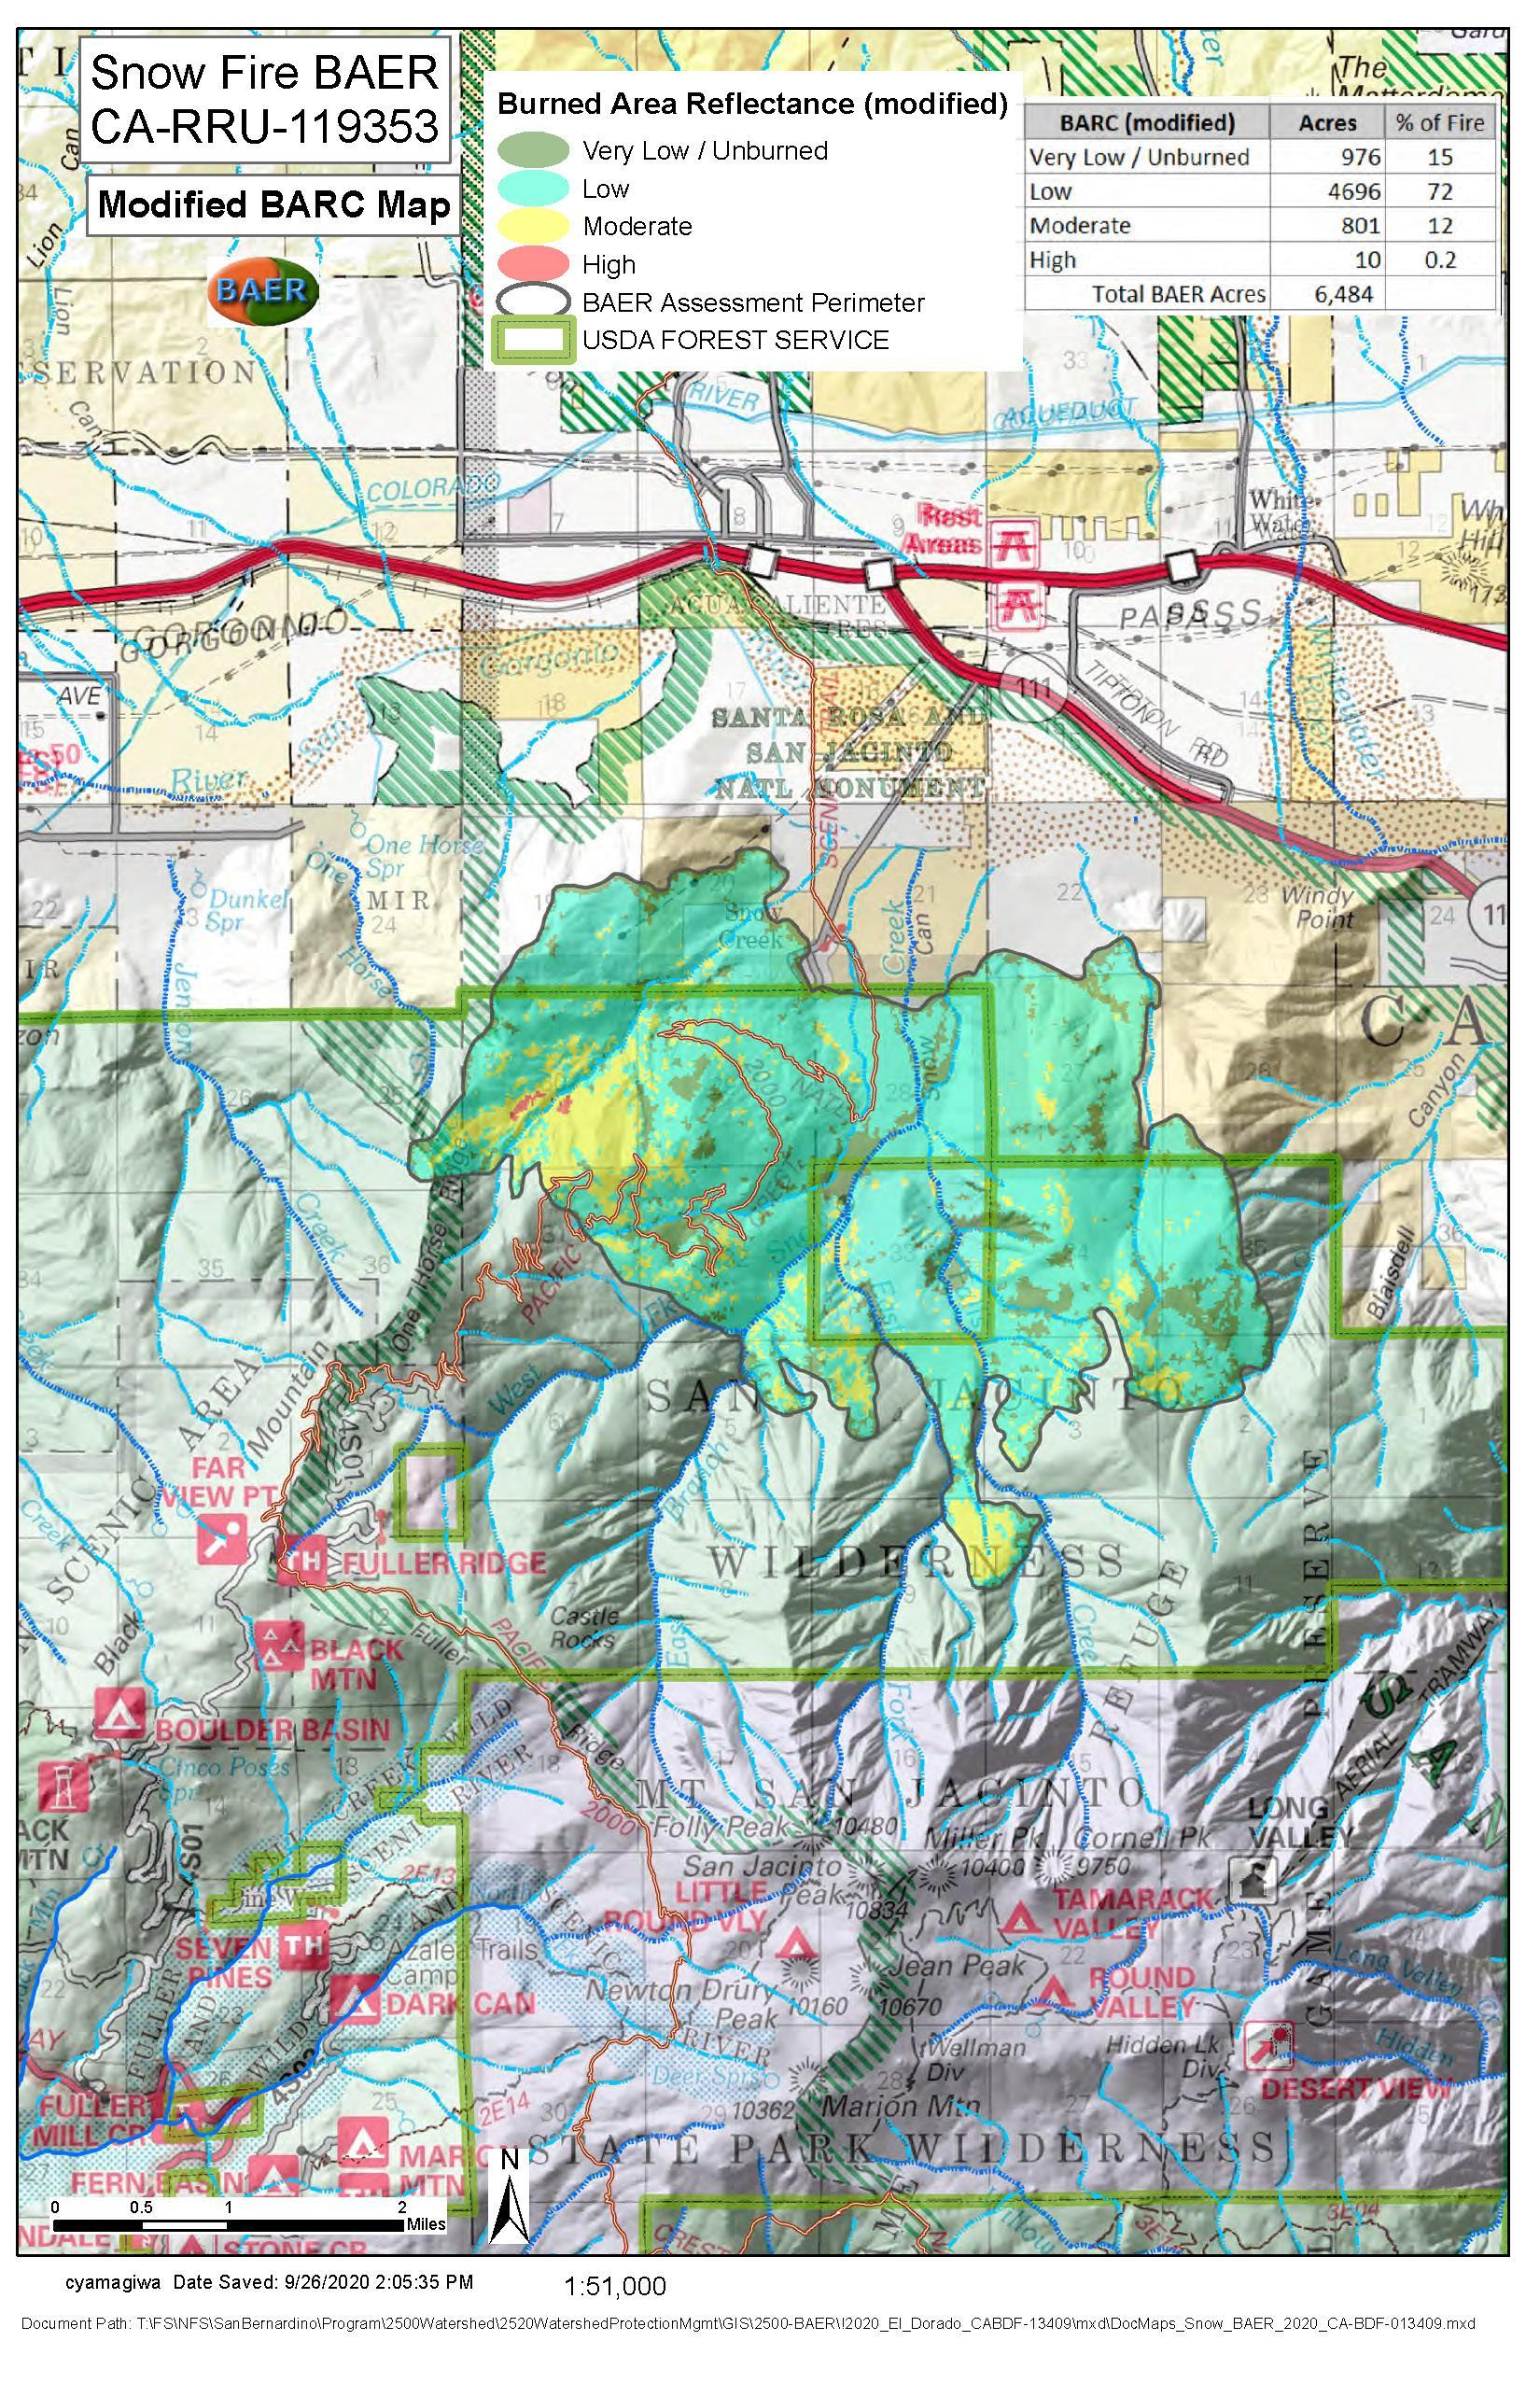 JPG Map Showing Burn Intensity for Snow Fire